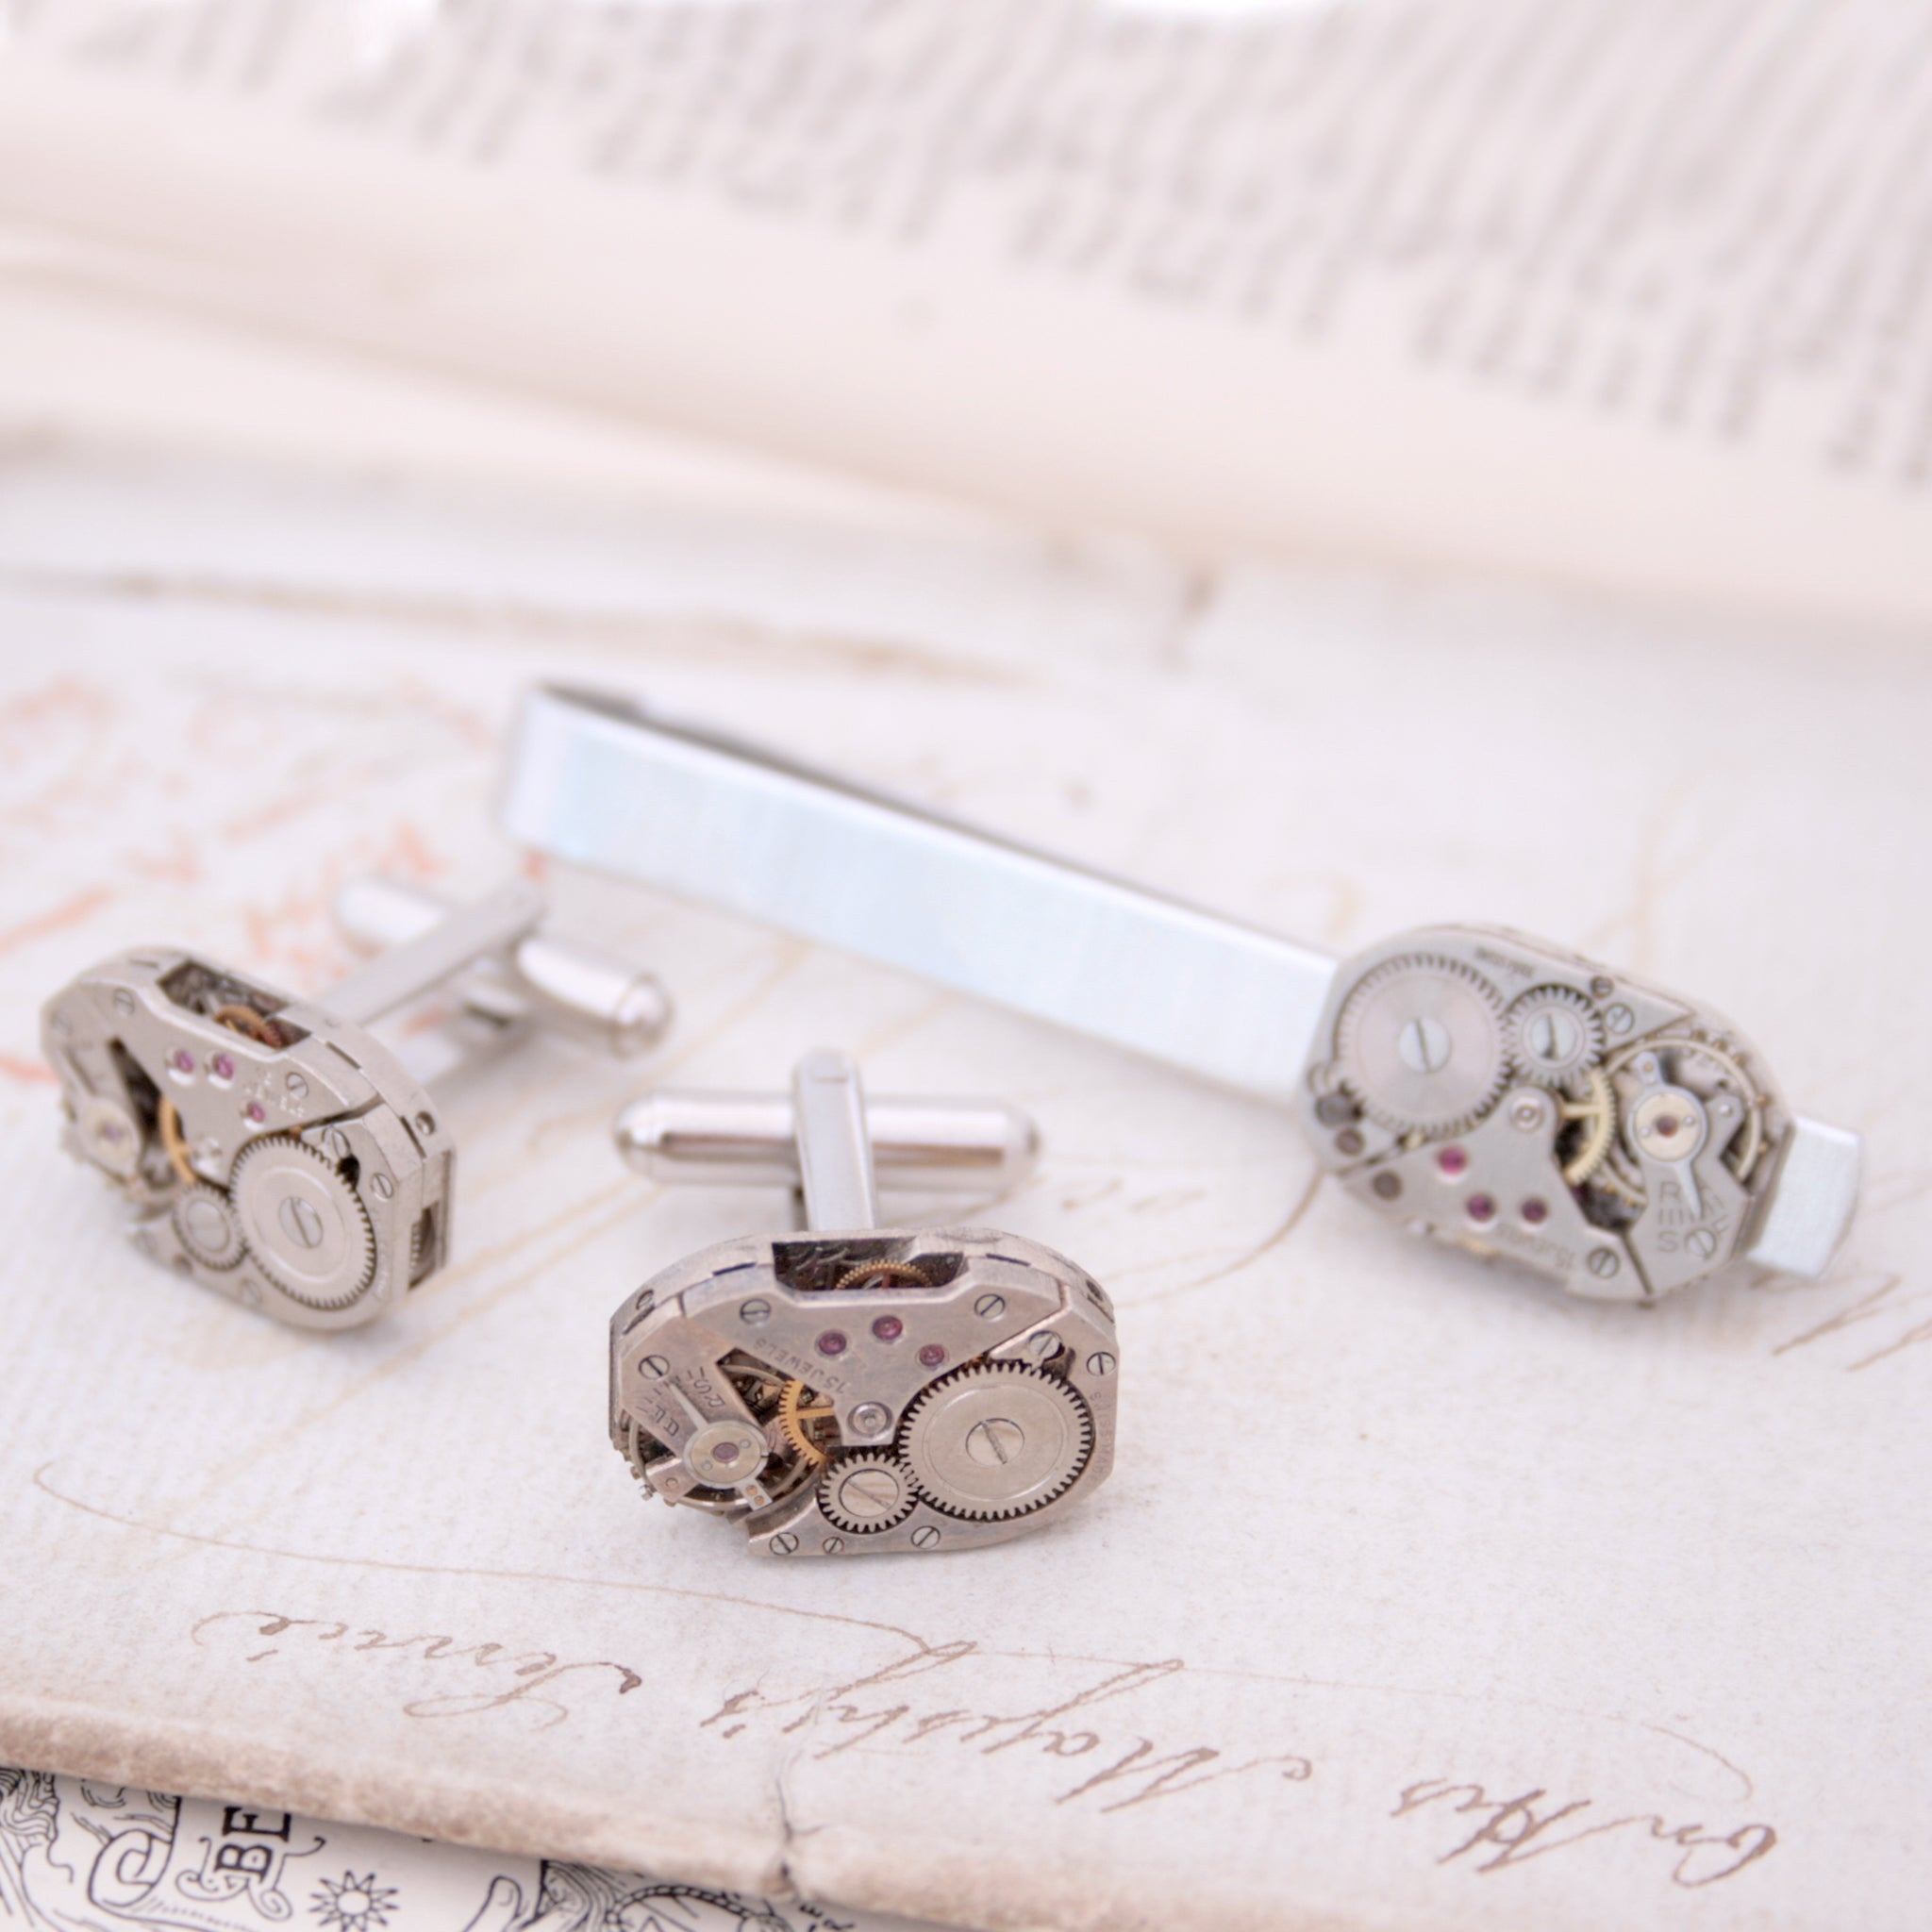 Tie Bar and Cufflinks in Steampunk Style